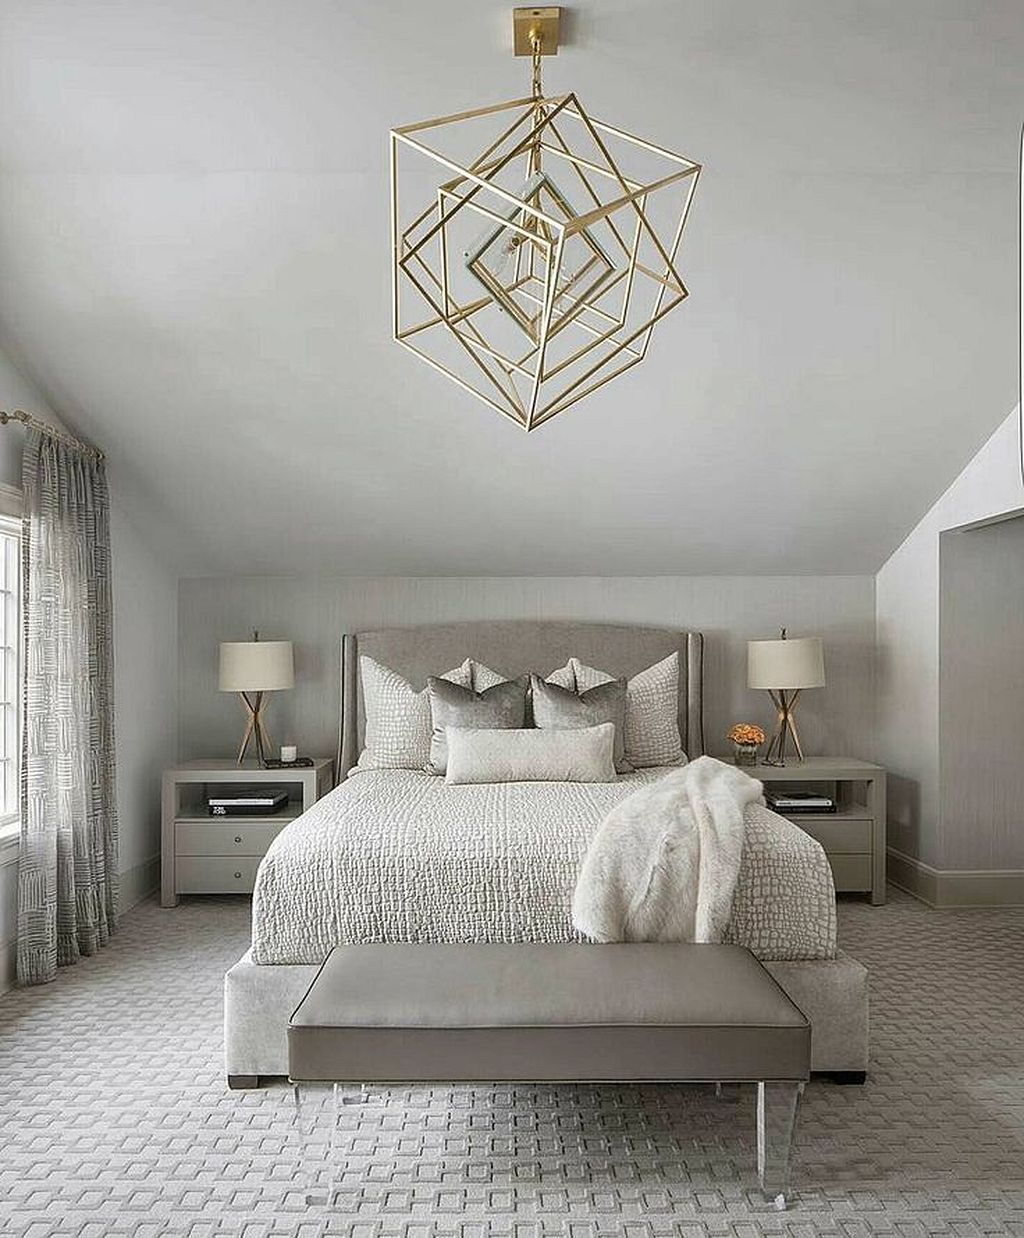 Master Bedroom Staging Ideas: Beautiful Bedroom Staging Ideas (3) In 2020